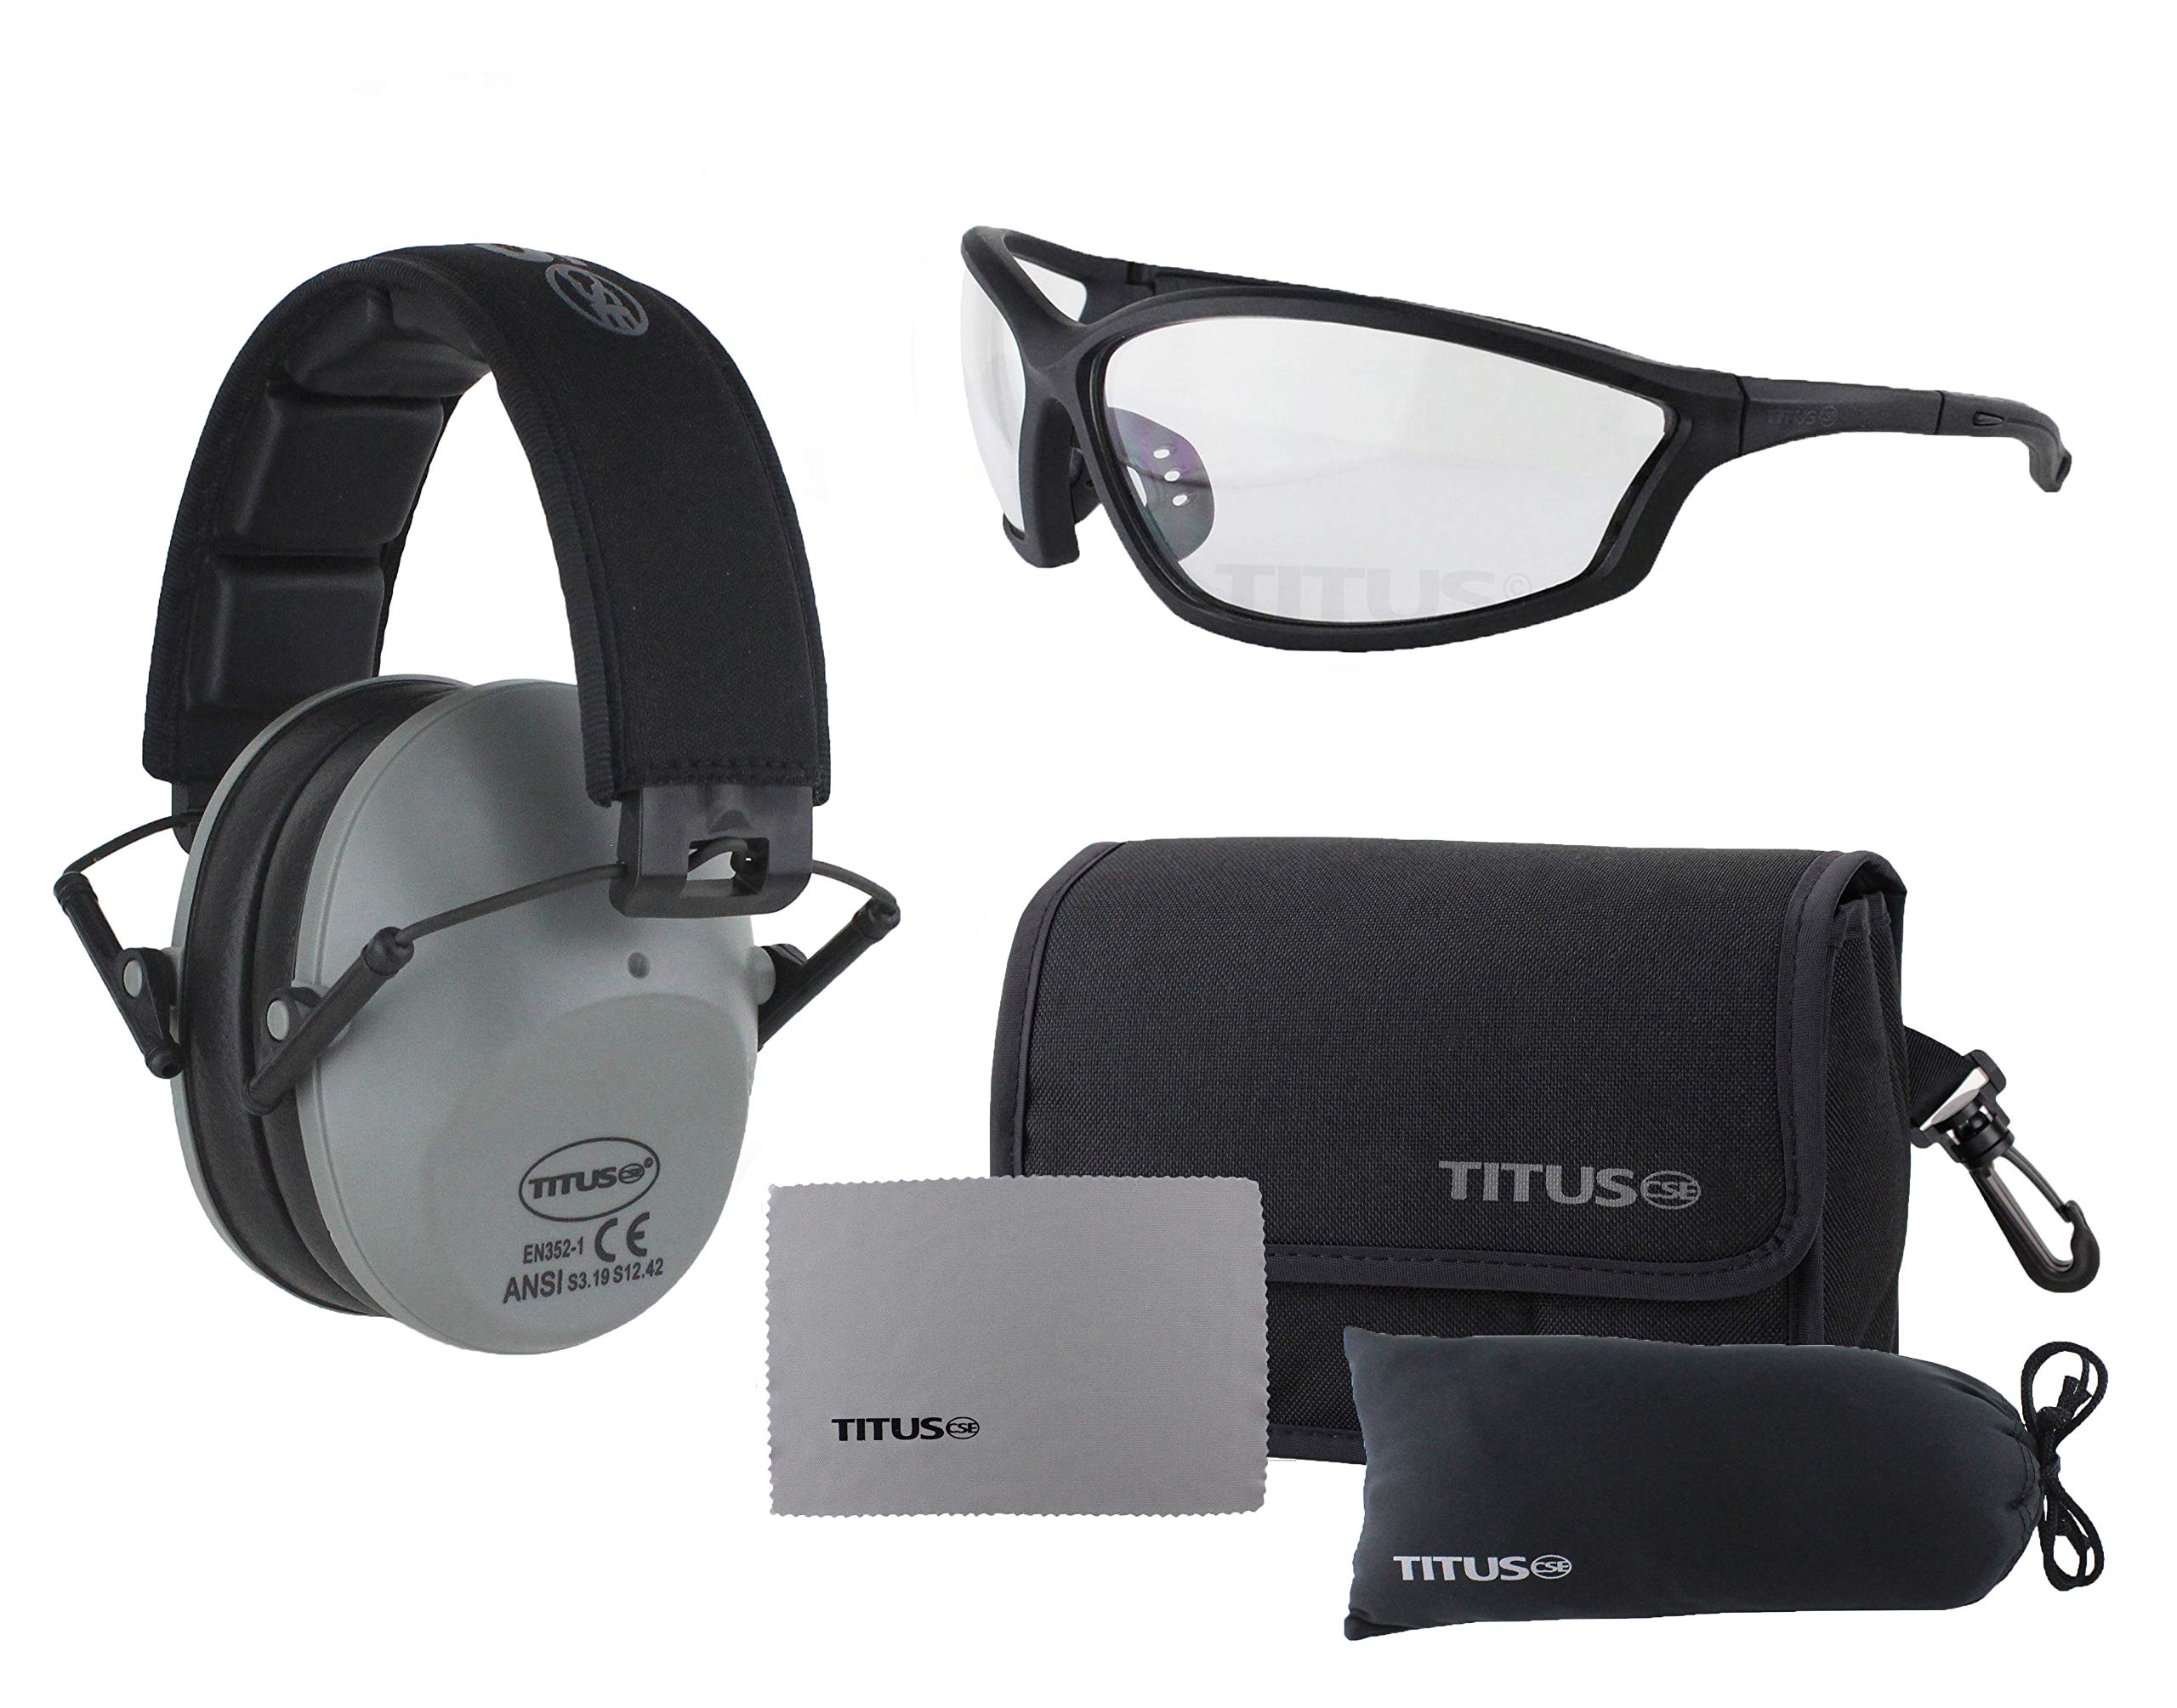 Titus 2 Series - 34 NRR Slim-Line Hearing Protection & G26 Competition Z87.1 Safety Glasses Combos (Grey, Clear) by Titus